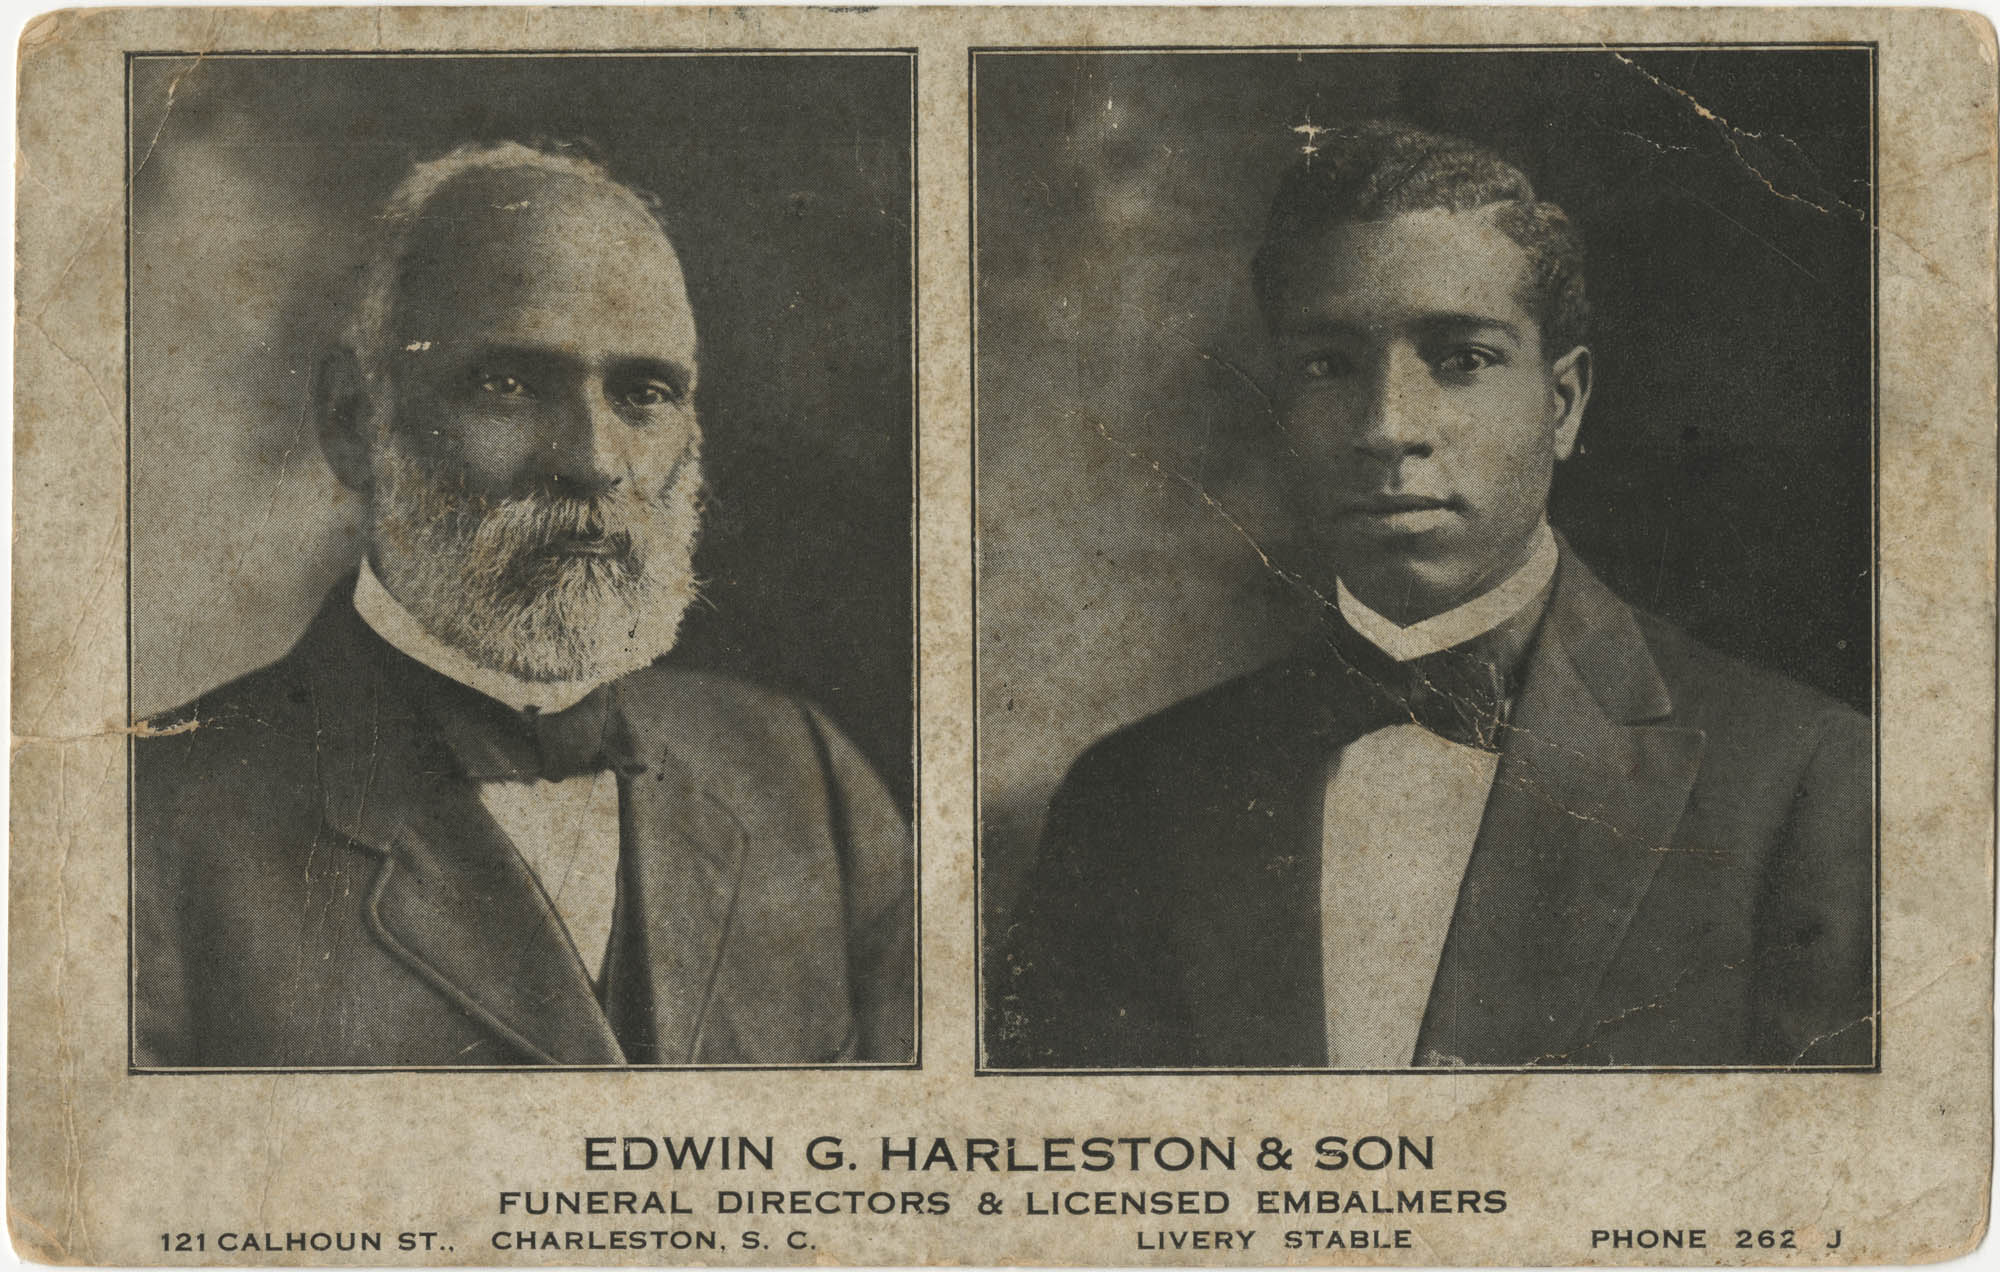 Postcard, Edwin G. Harleston and Son, Funeral Directors and Licensed Embalmers